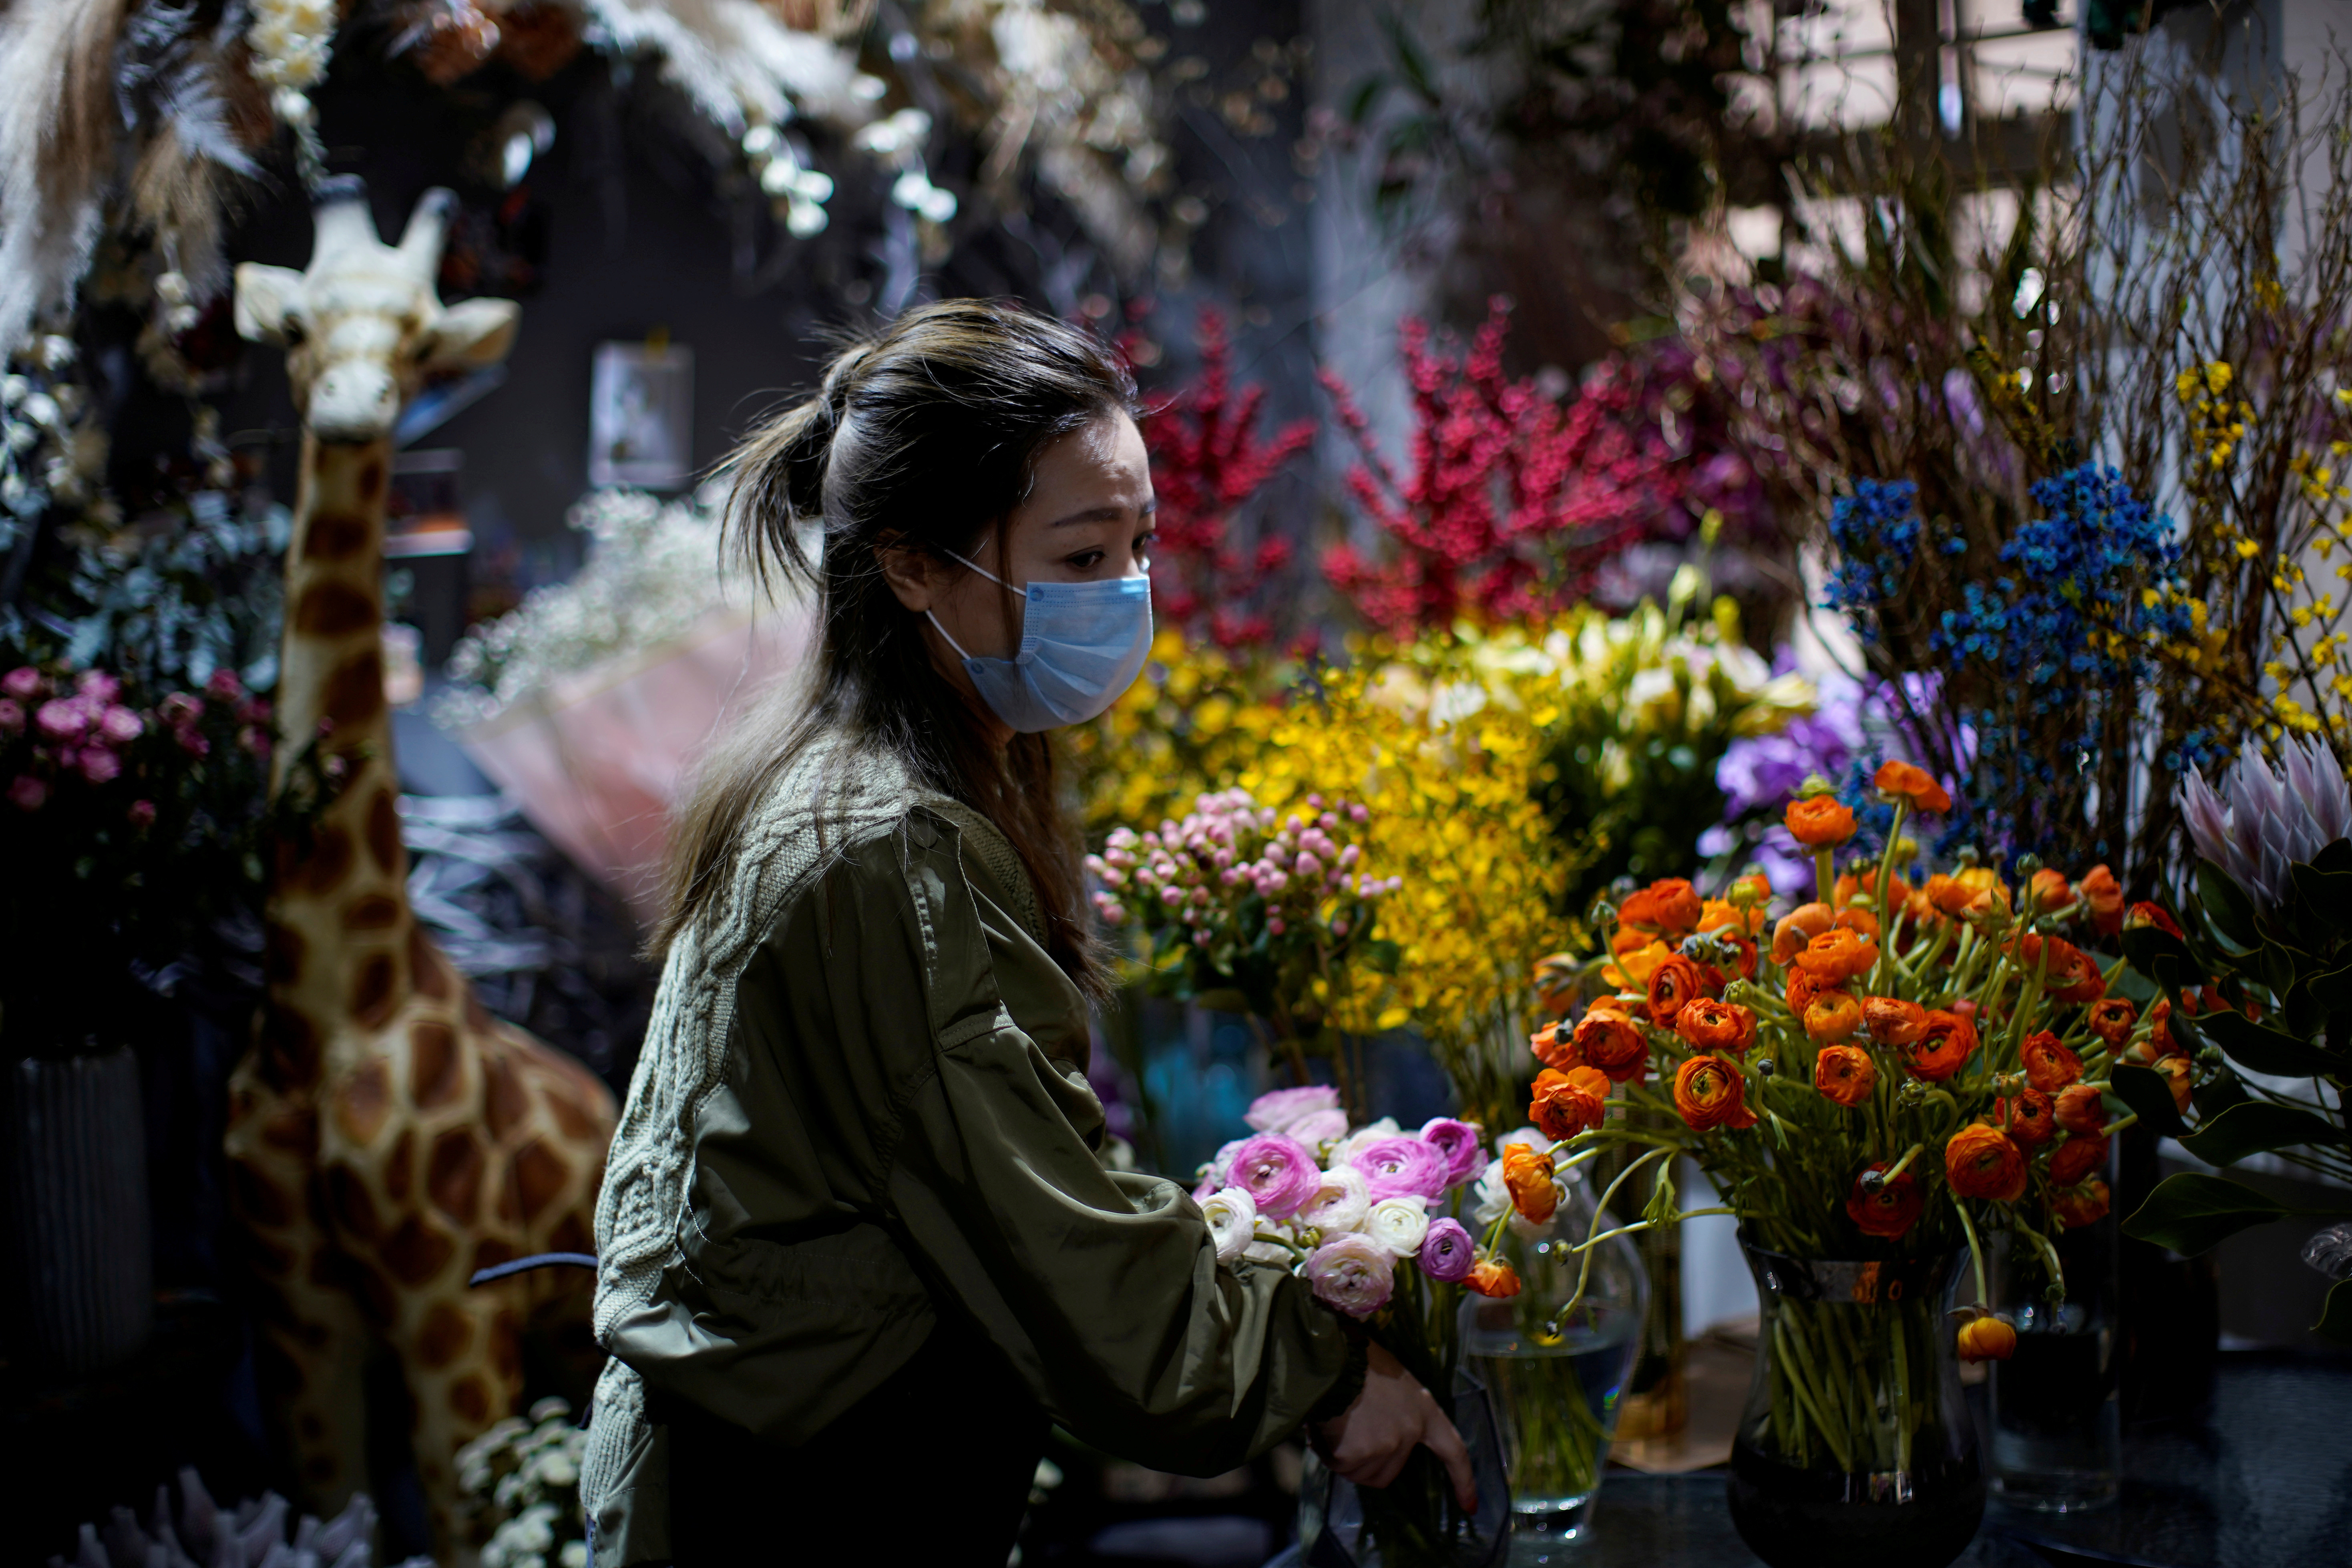 Florist Wang Haiyan, 41, works among flowers inside her shop as the country is hit by an outbreak of the new coronavirus, in Shanghai, China February 5, 2020.  REUTERS/Aly Song     TPX IMAGES OF THE DAY - RC27UE9770YB